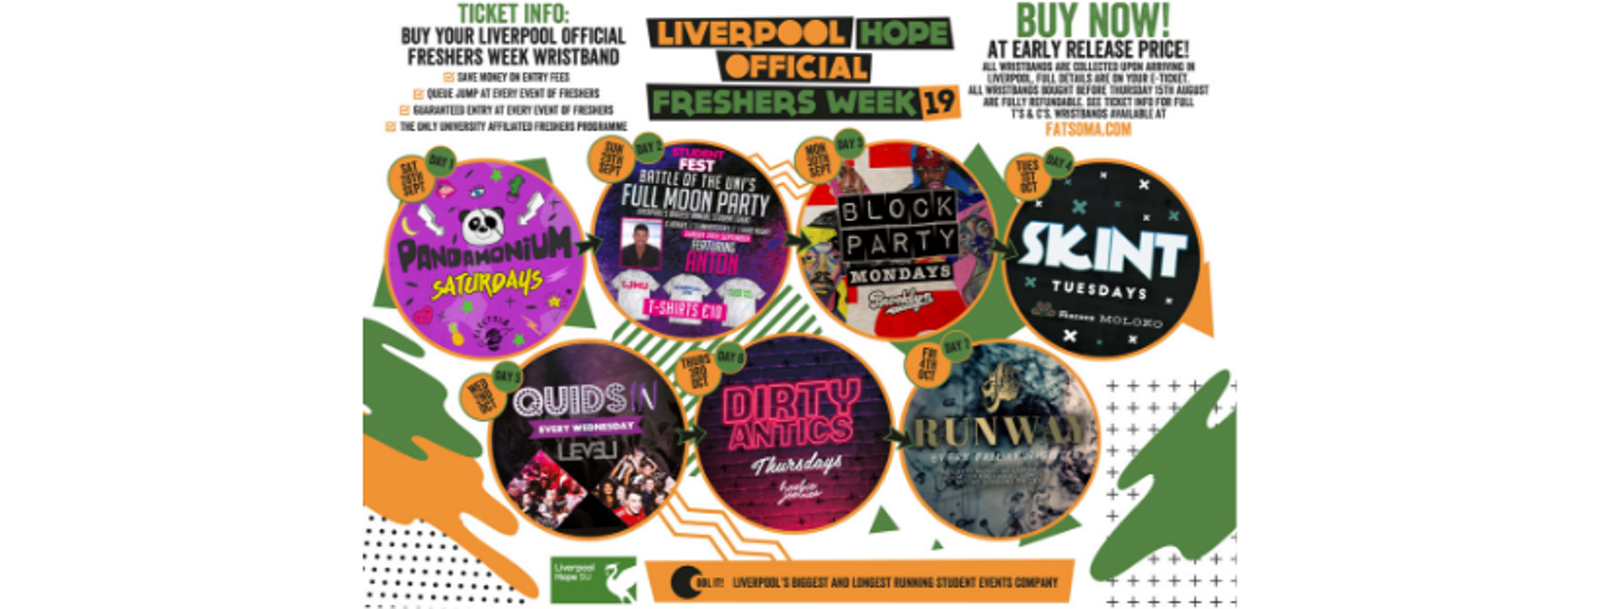 Liverpool Hope University Official Freshers Week 2019